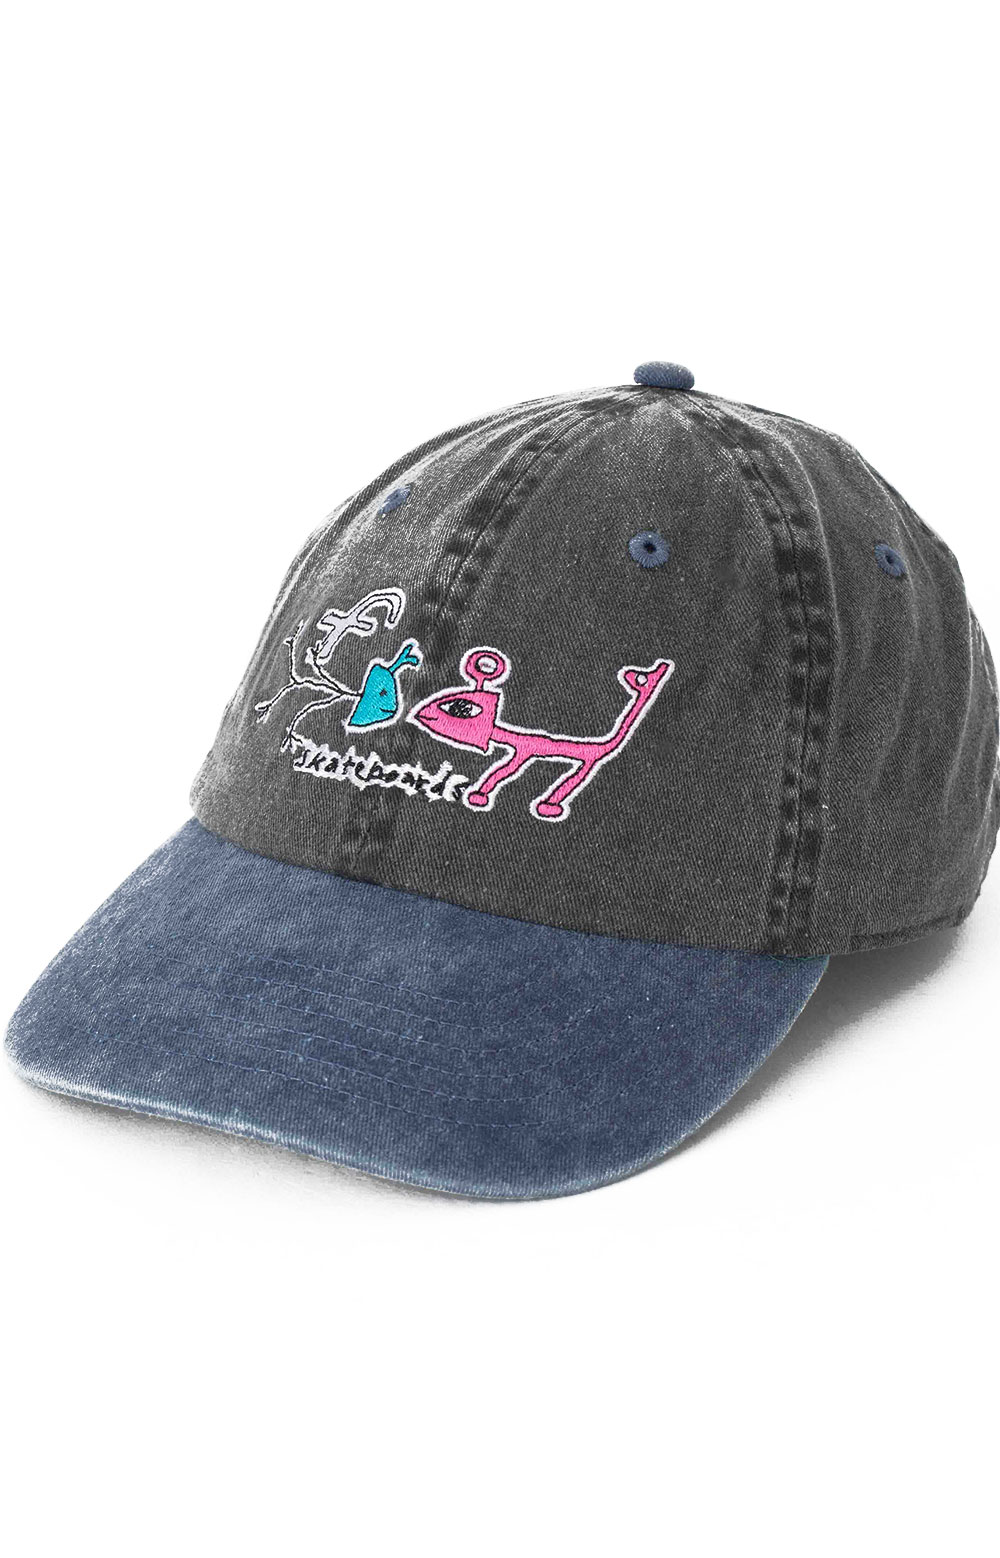 Frog Exists! Dad Hat - Black/Turquoise